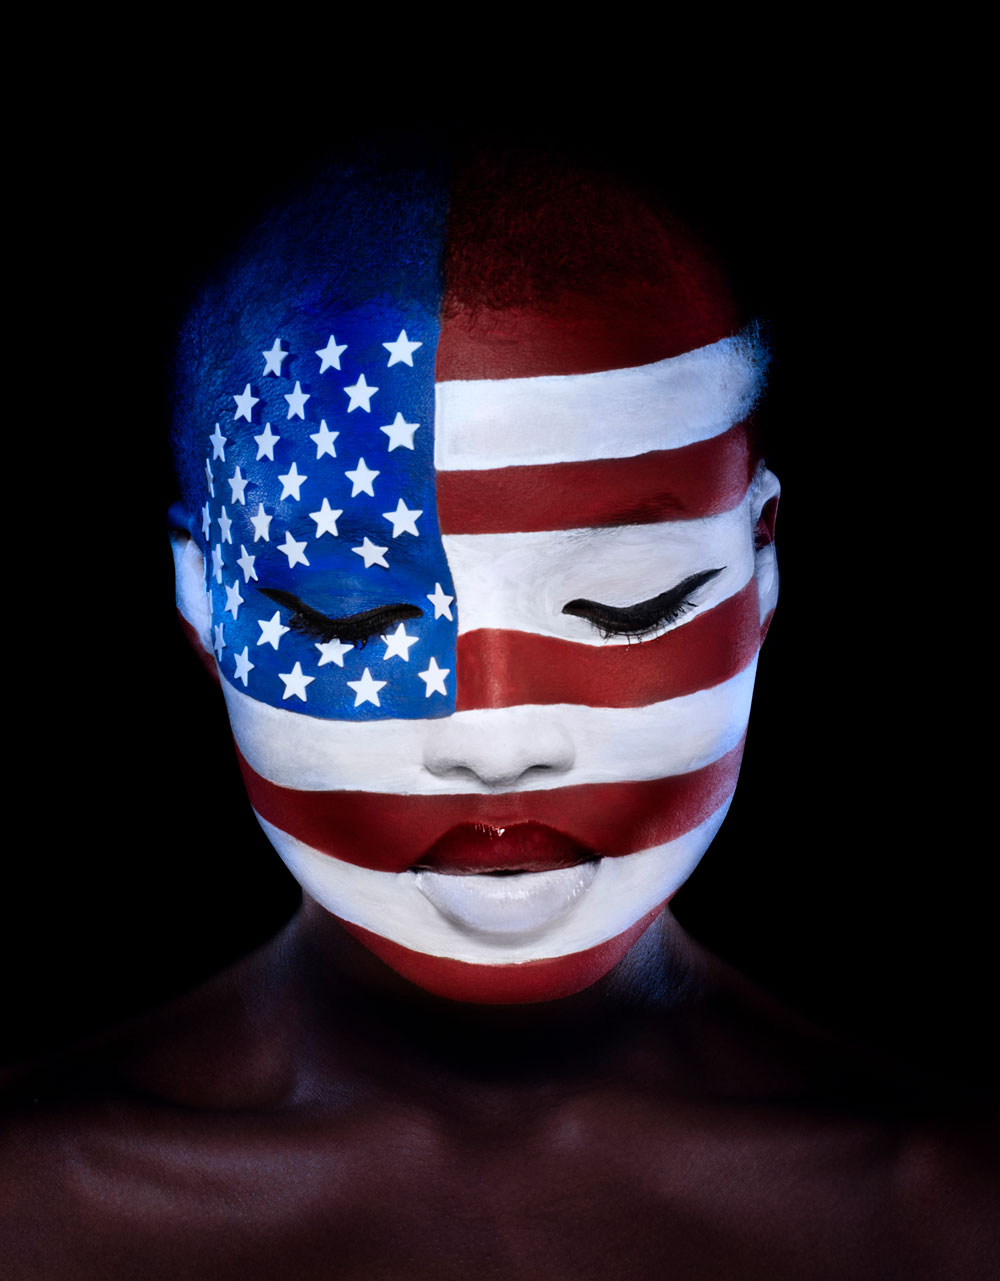 Woman Face Painted as the United States of America Flag